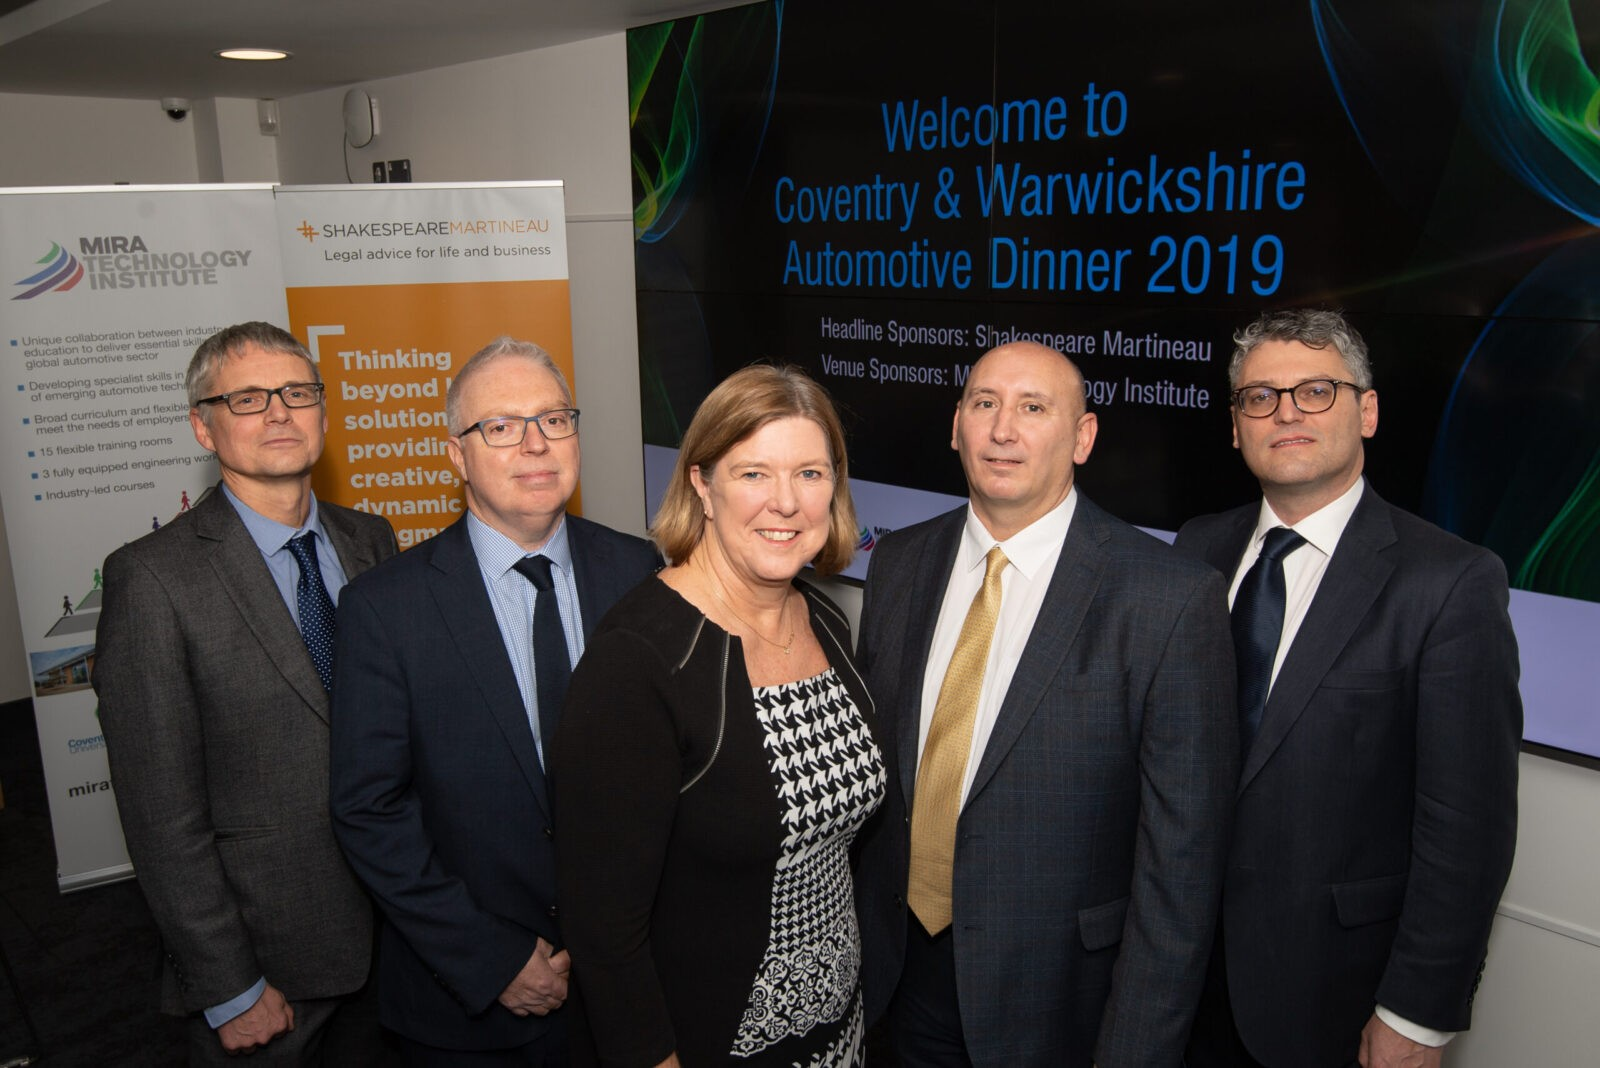 Coventry & Warwickshire Automotive Dinner